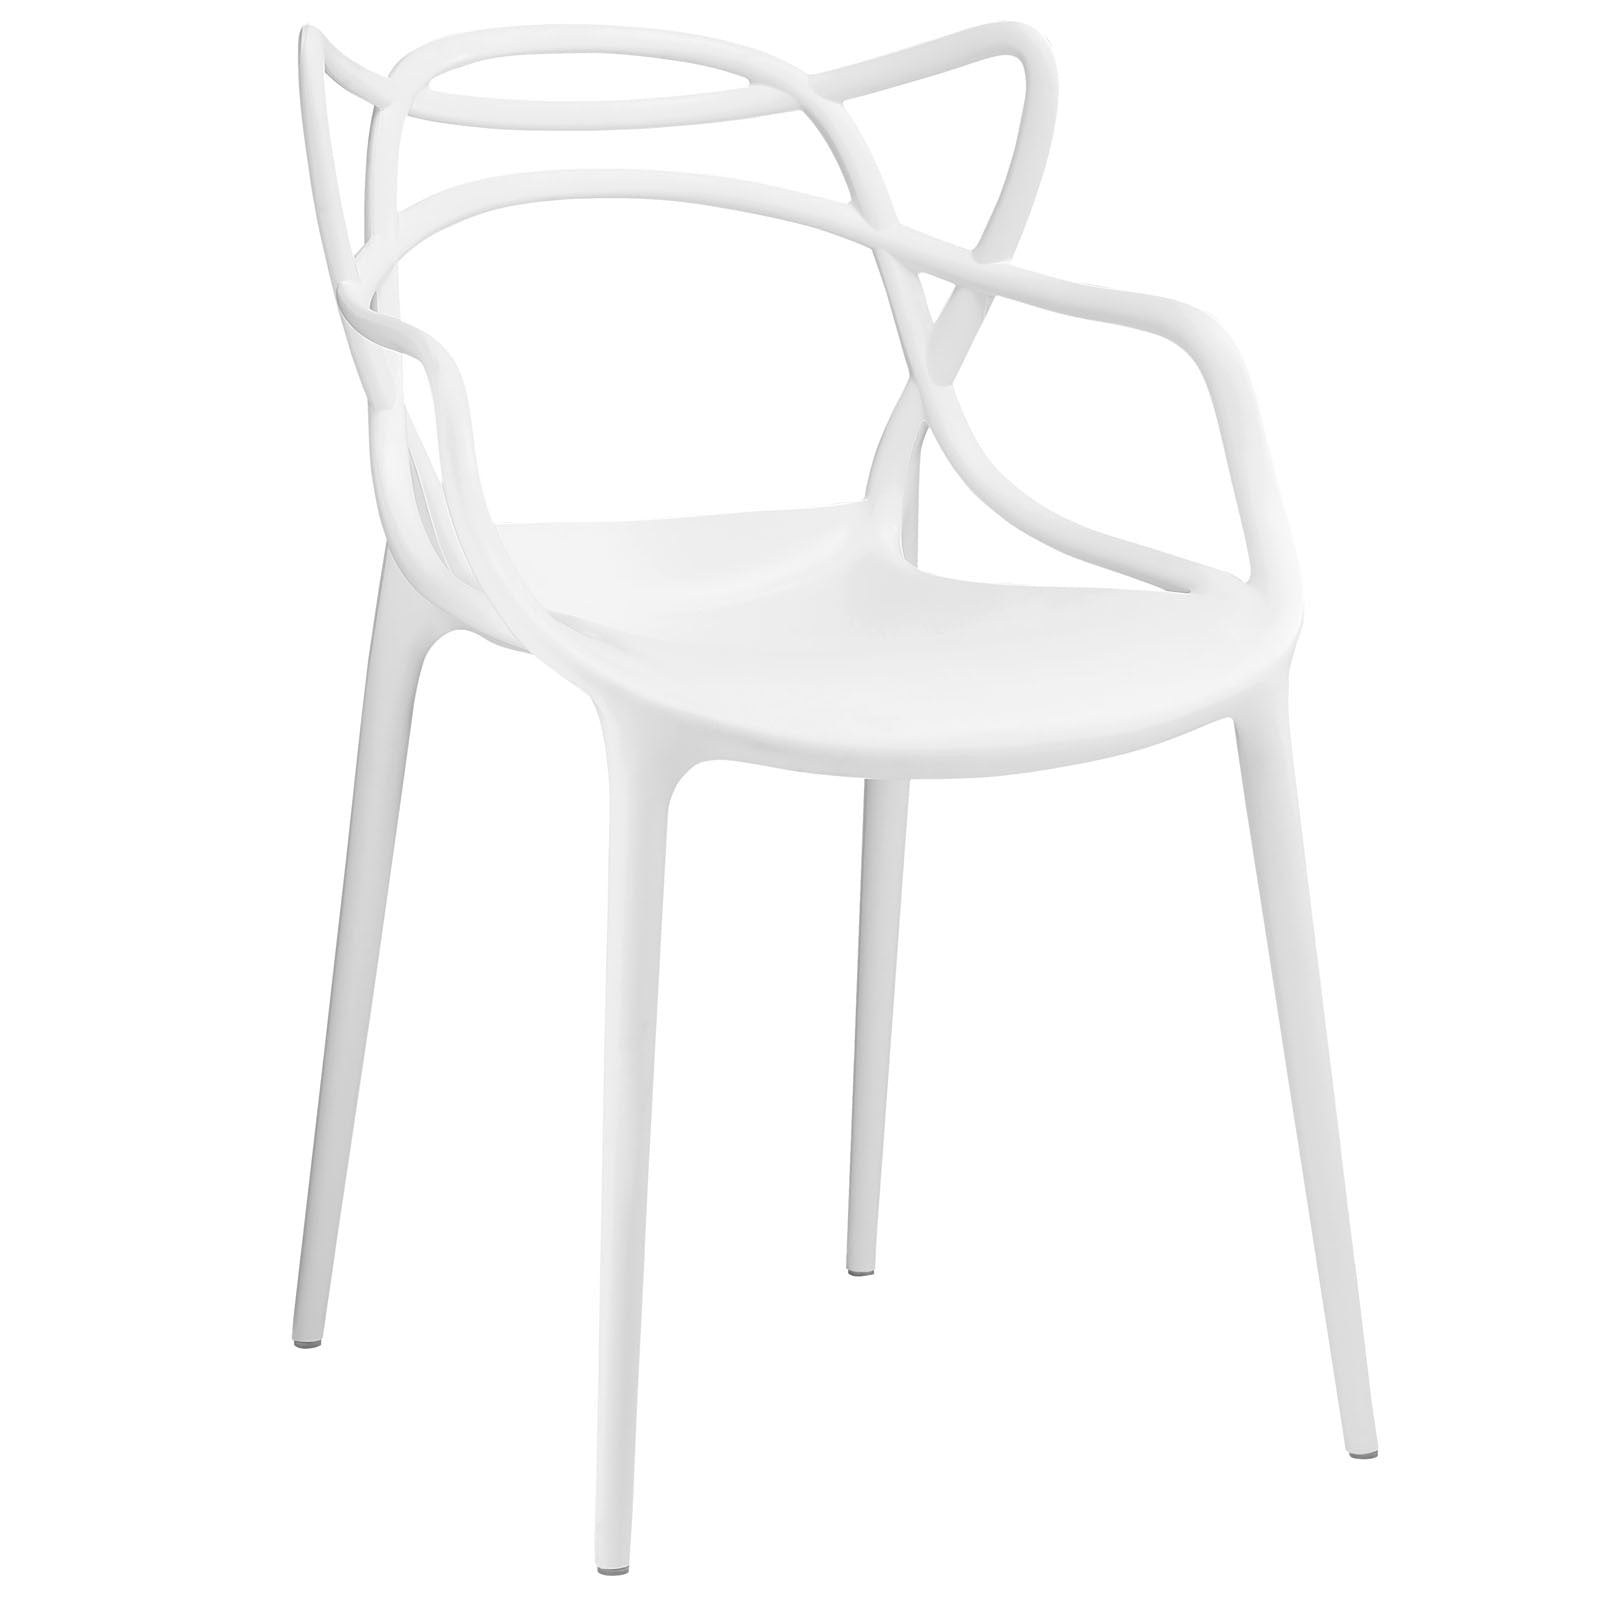 ... Philippe Starck Masters Chair Reproduction - The Modern Source - 2 ...  sc 1 st  The Modern Source & Philippe Starck Masters Chair Reproduction - The Modern Source